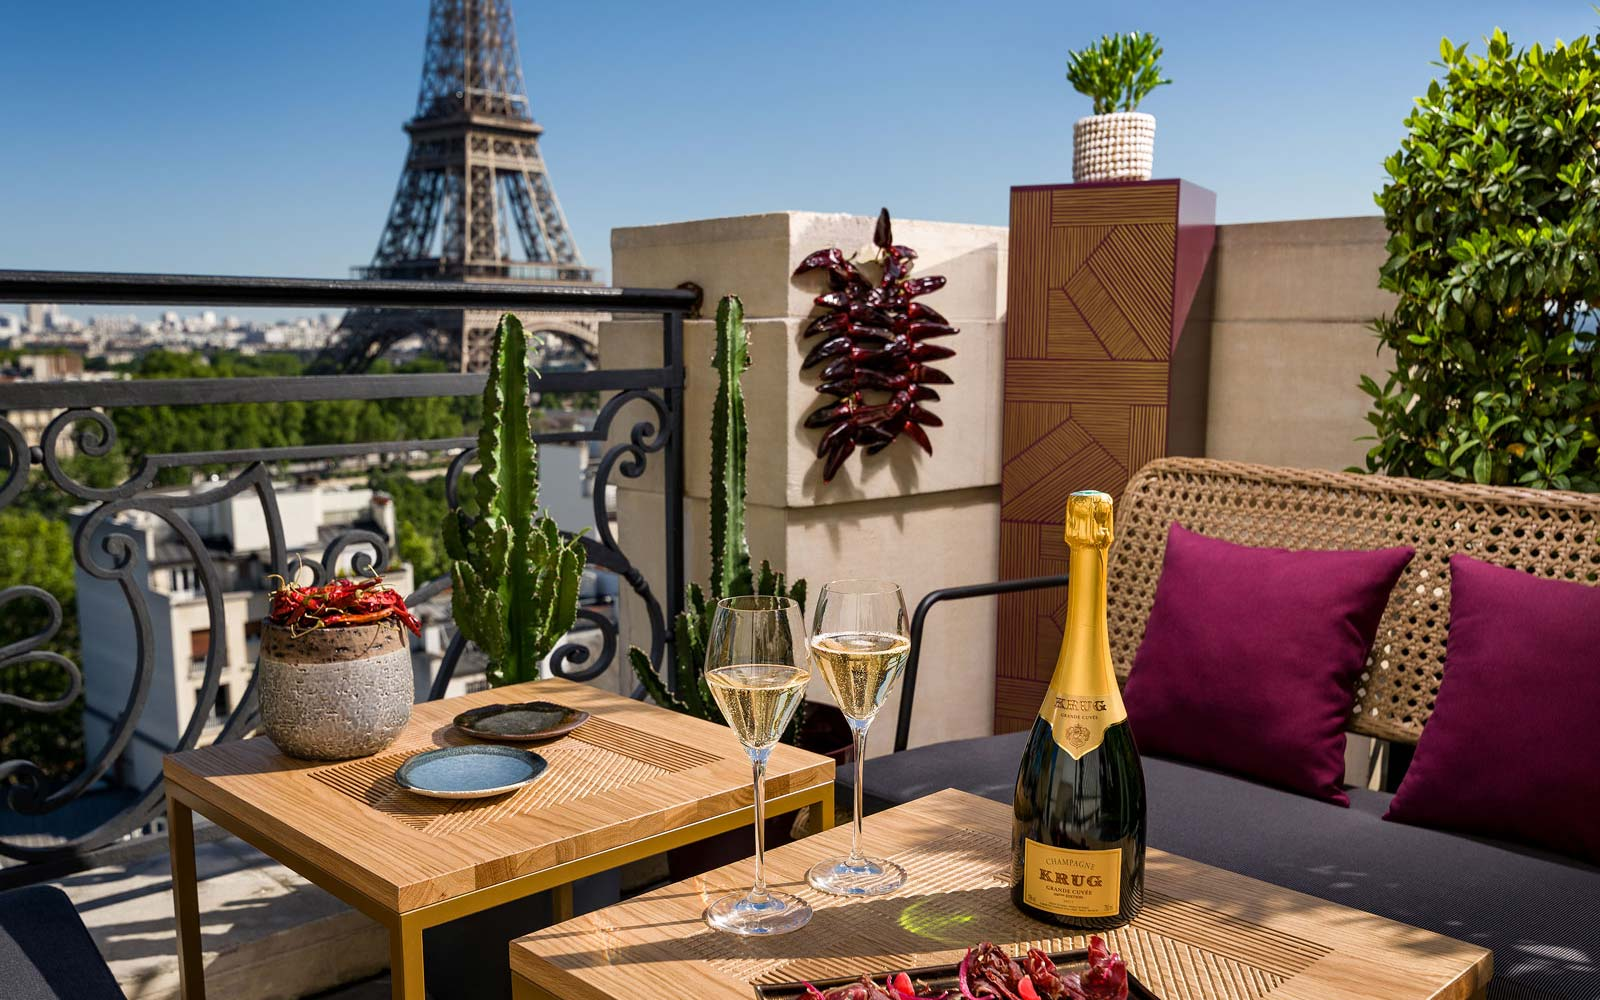 This Rooftop Champagne Bar Might Have the Best View of the Eiffel Tower in All of Paris